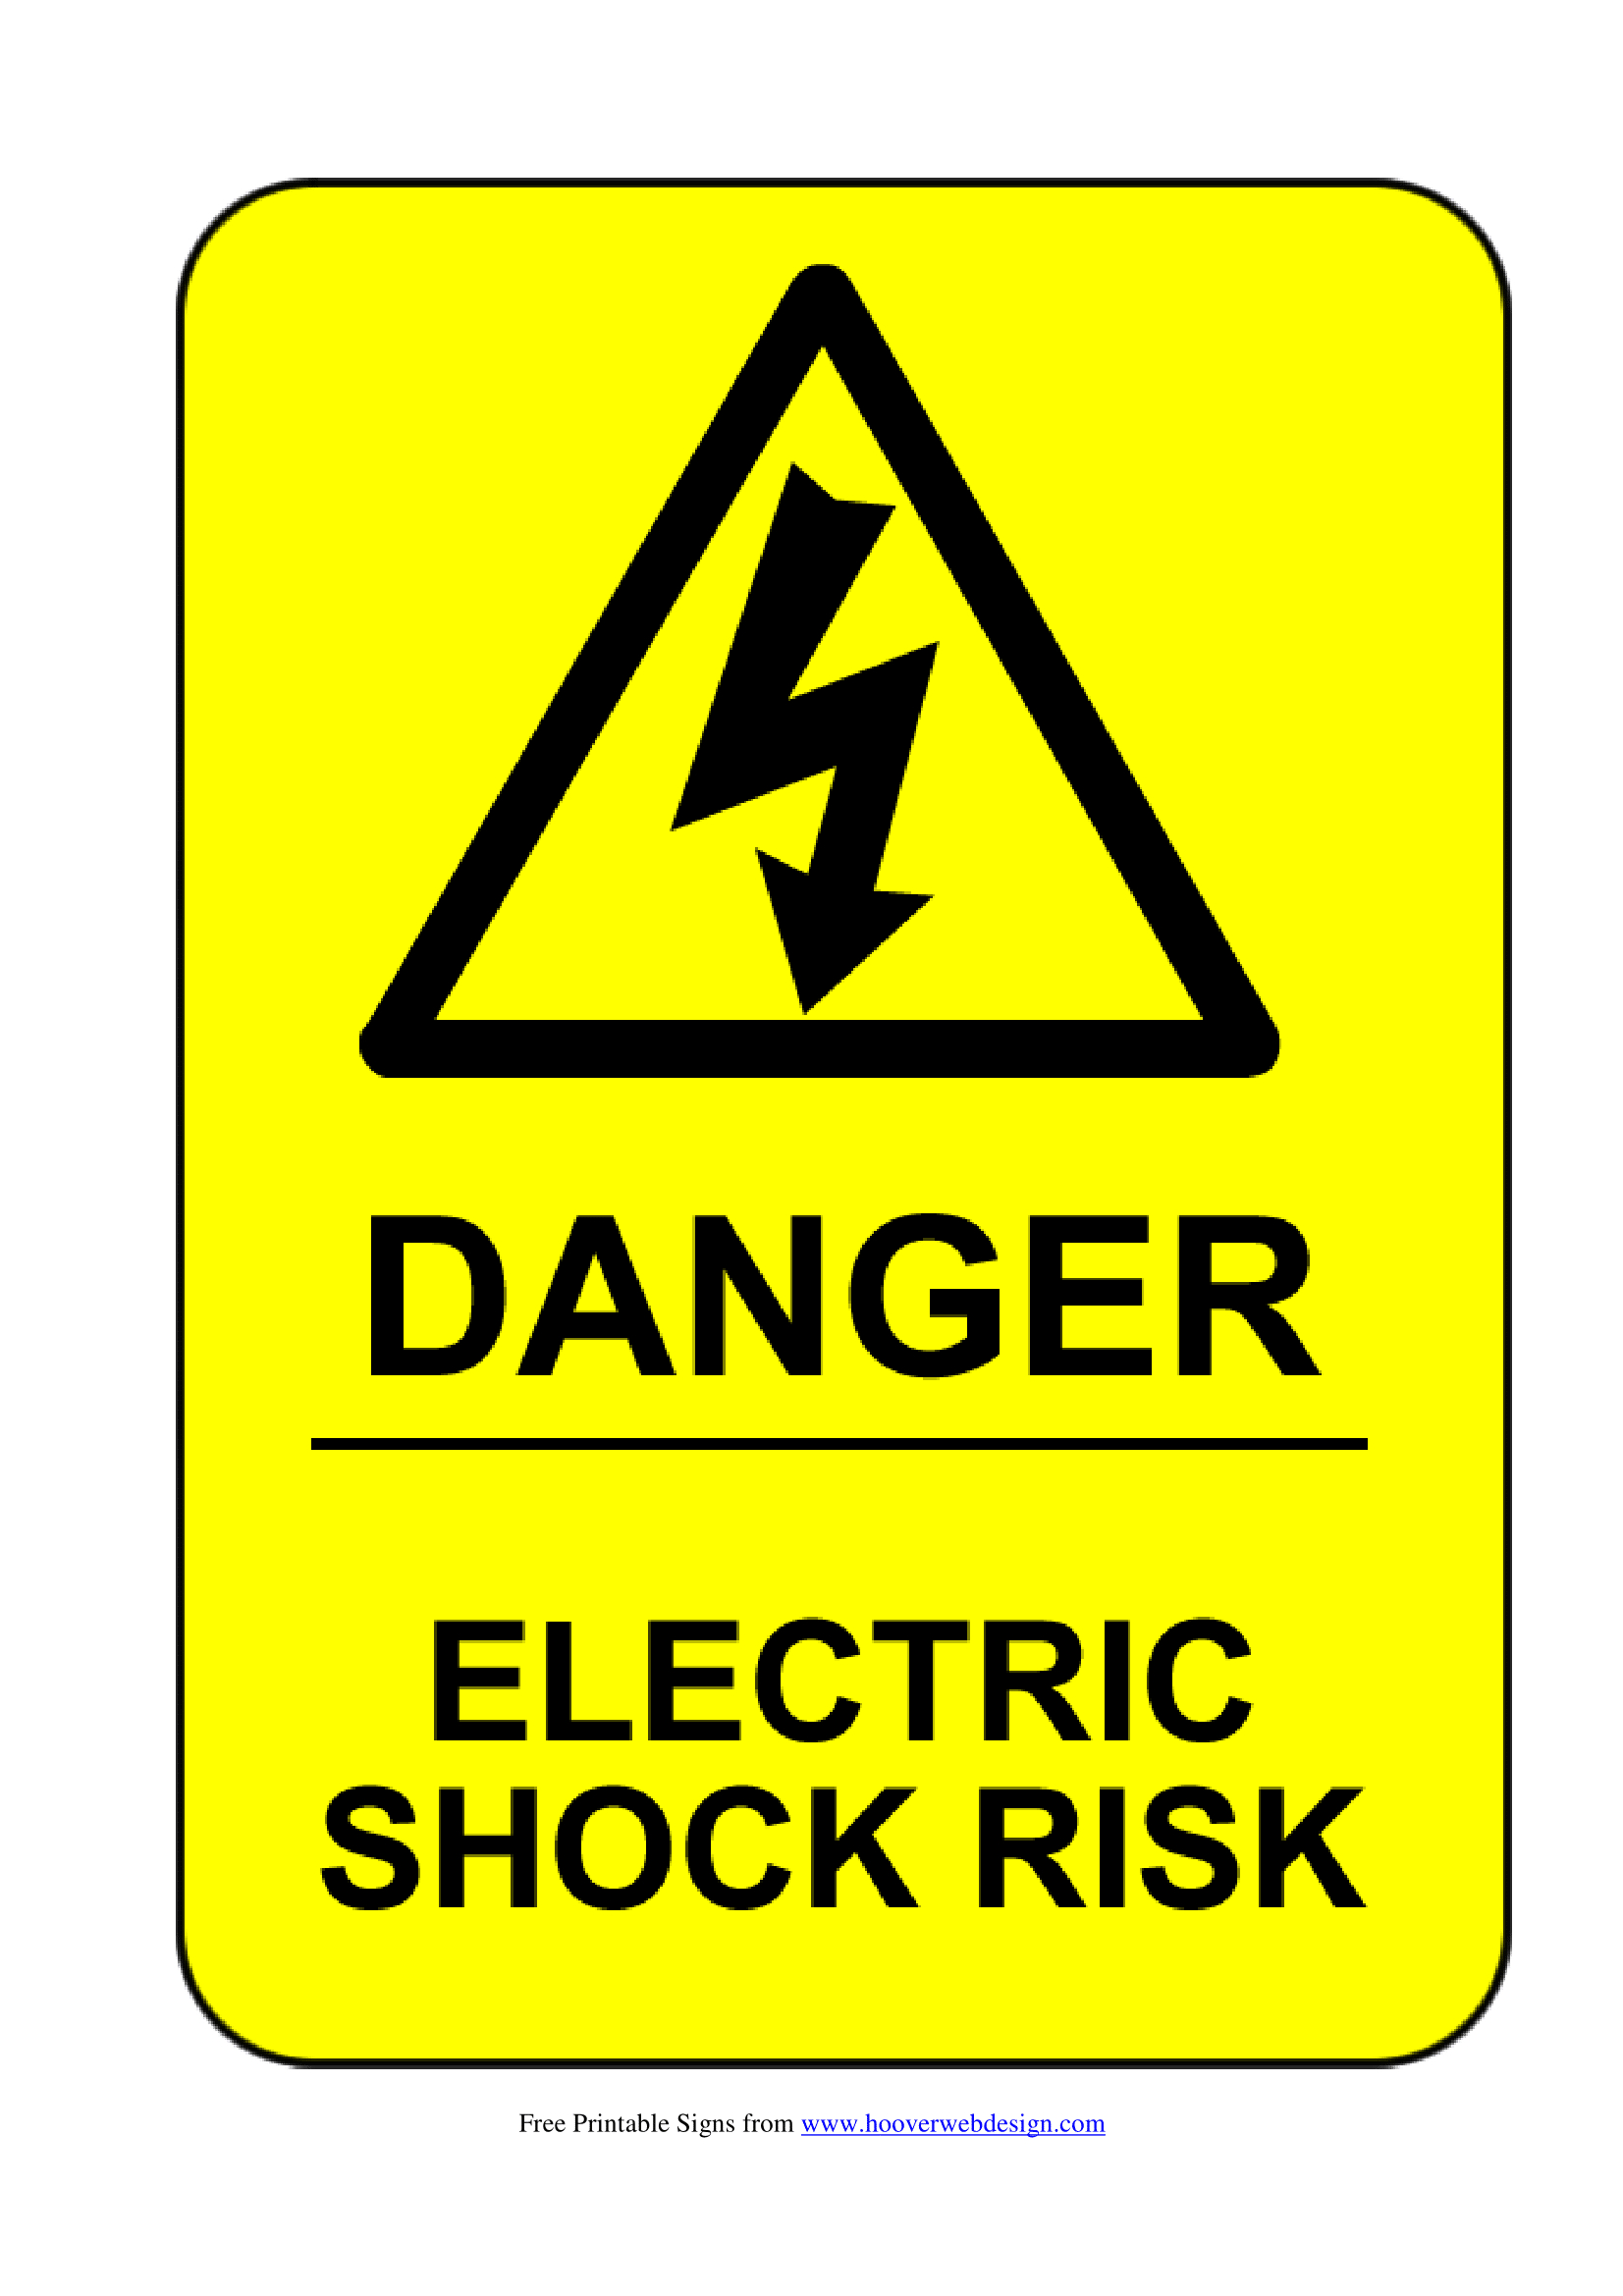 Electrical Safety Signs | Poster Template - Free Printable Safety Signs